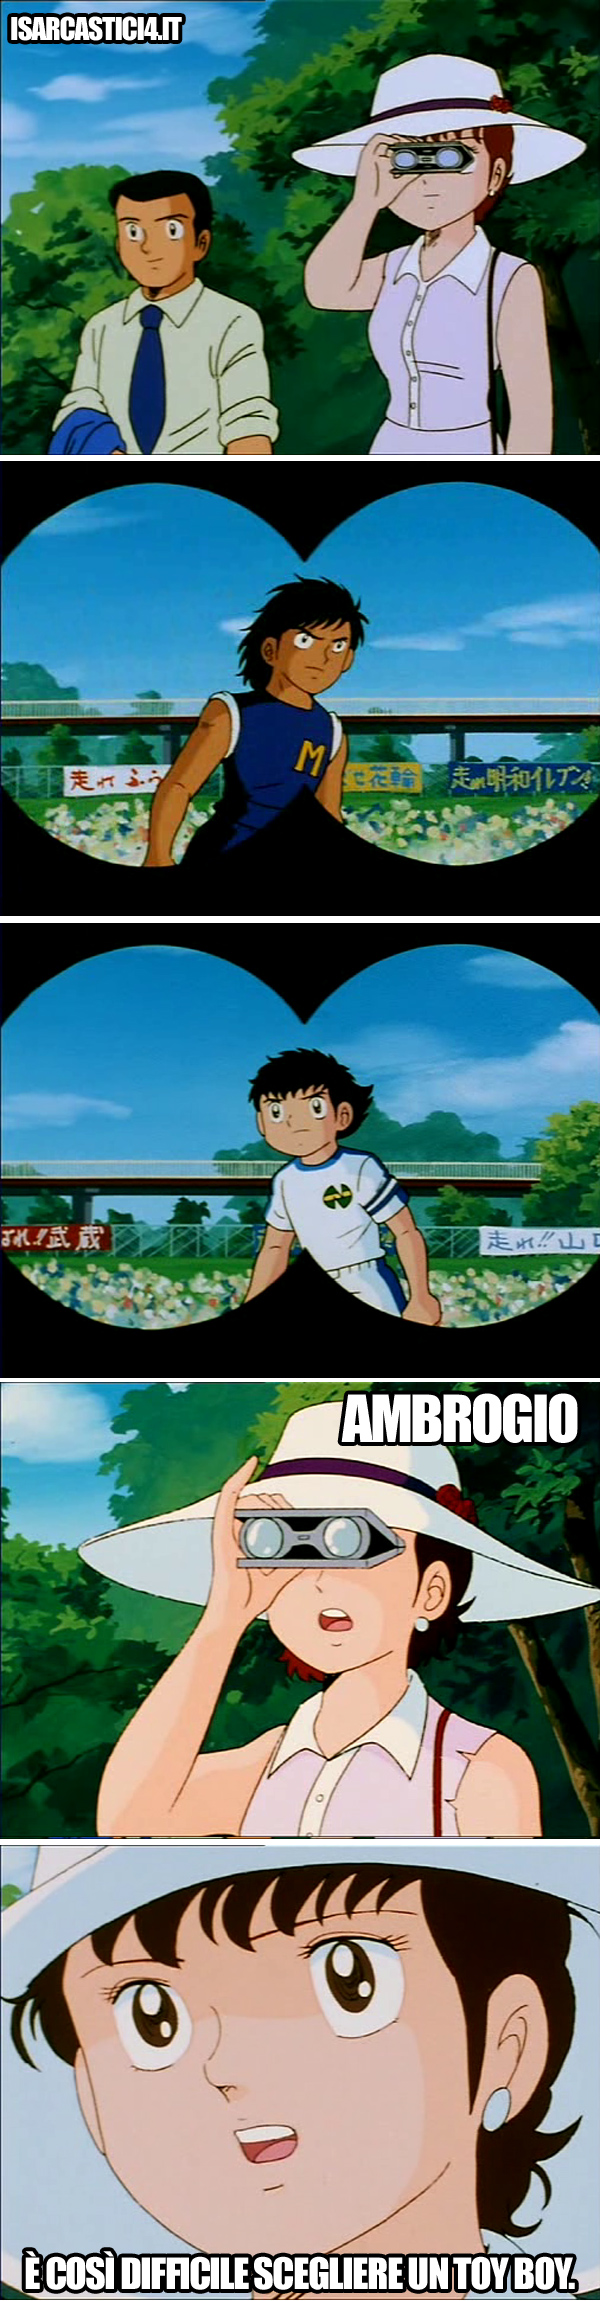 Holly & Benji, Capitan Tsubasa meme ita - First world problems